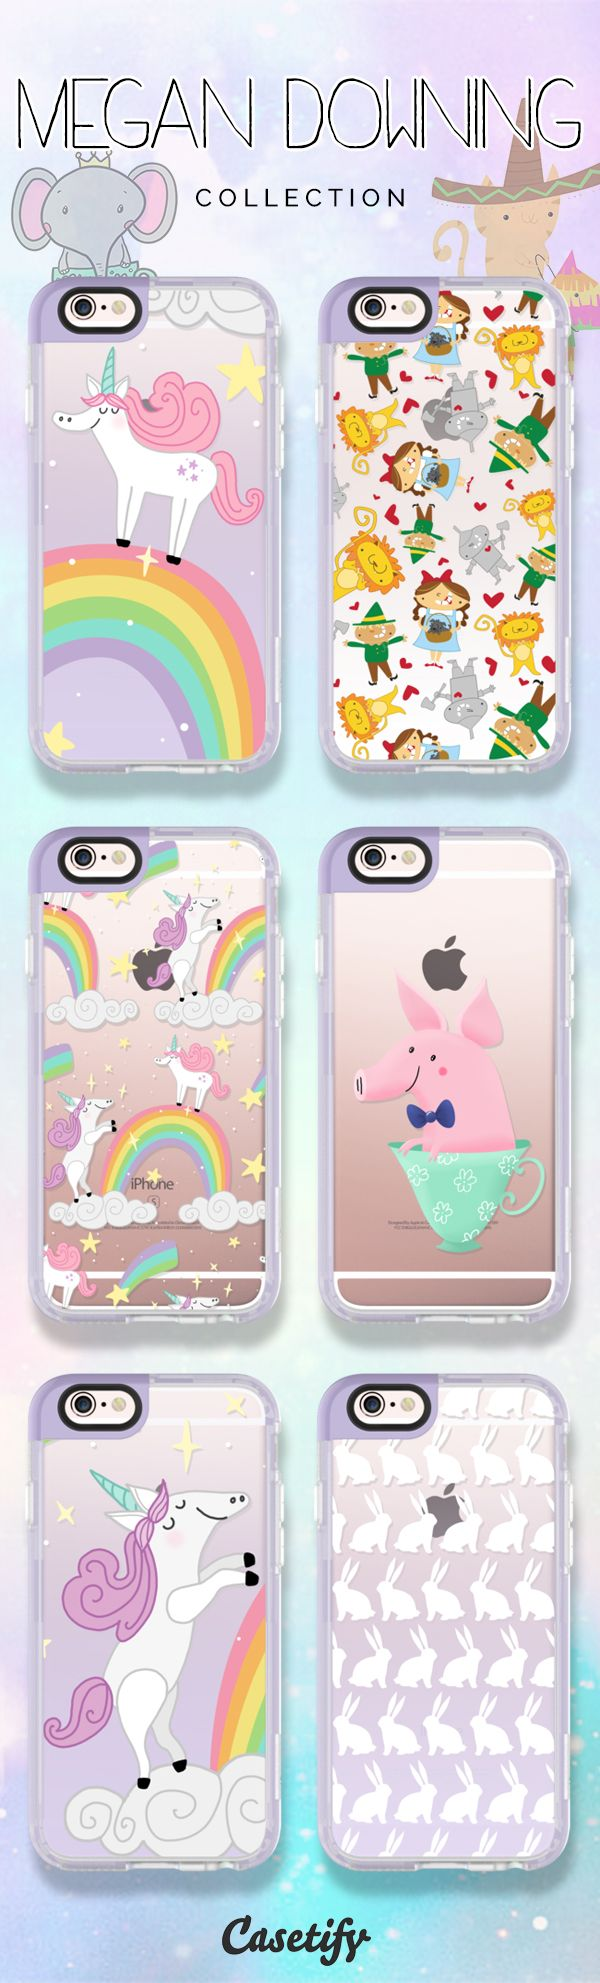 Do you want these cute cases designed by Megan Downing? Shop them here: https://www.casetify.com/PigAndPumpkin/collection | @casetify